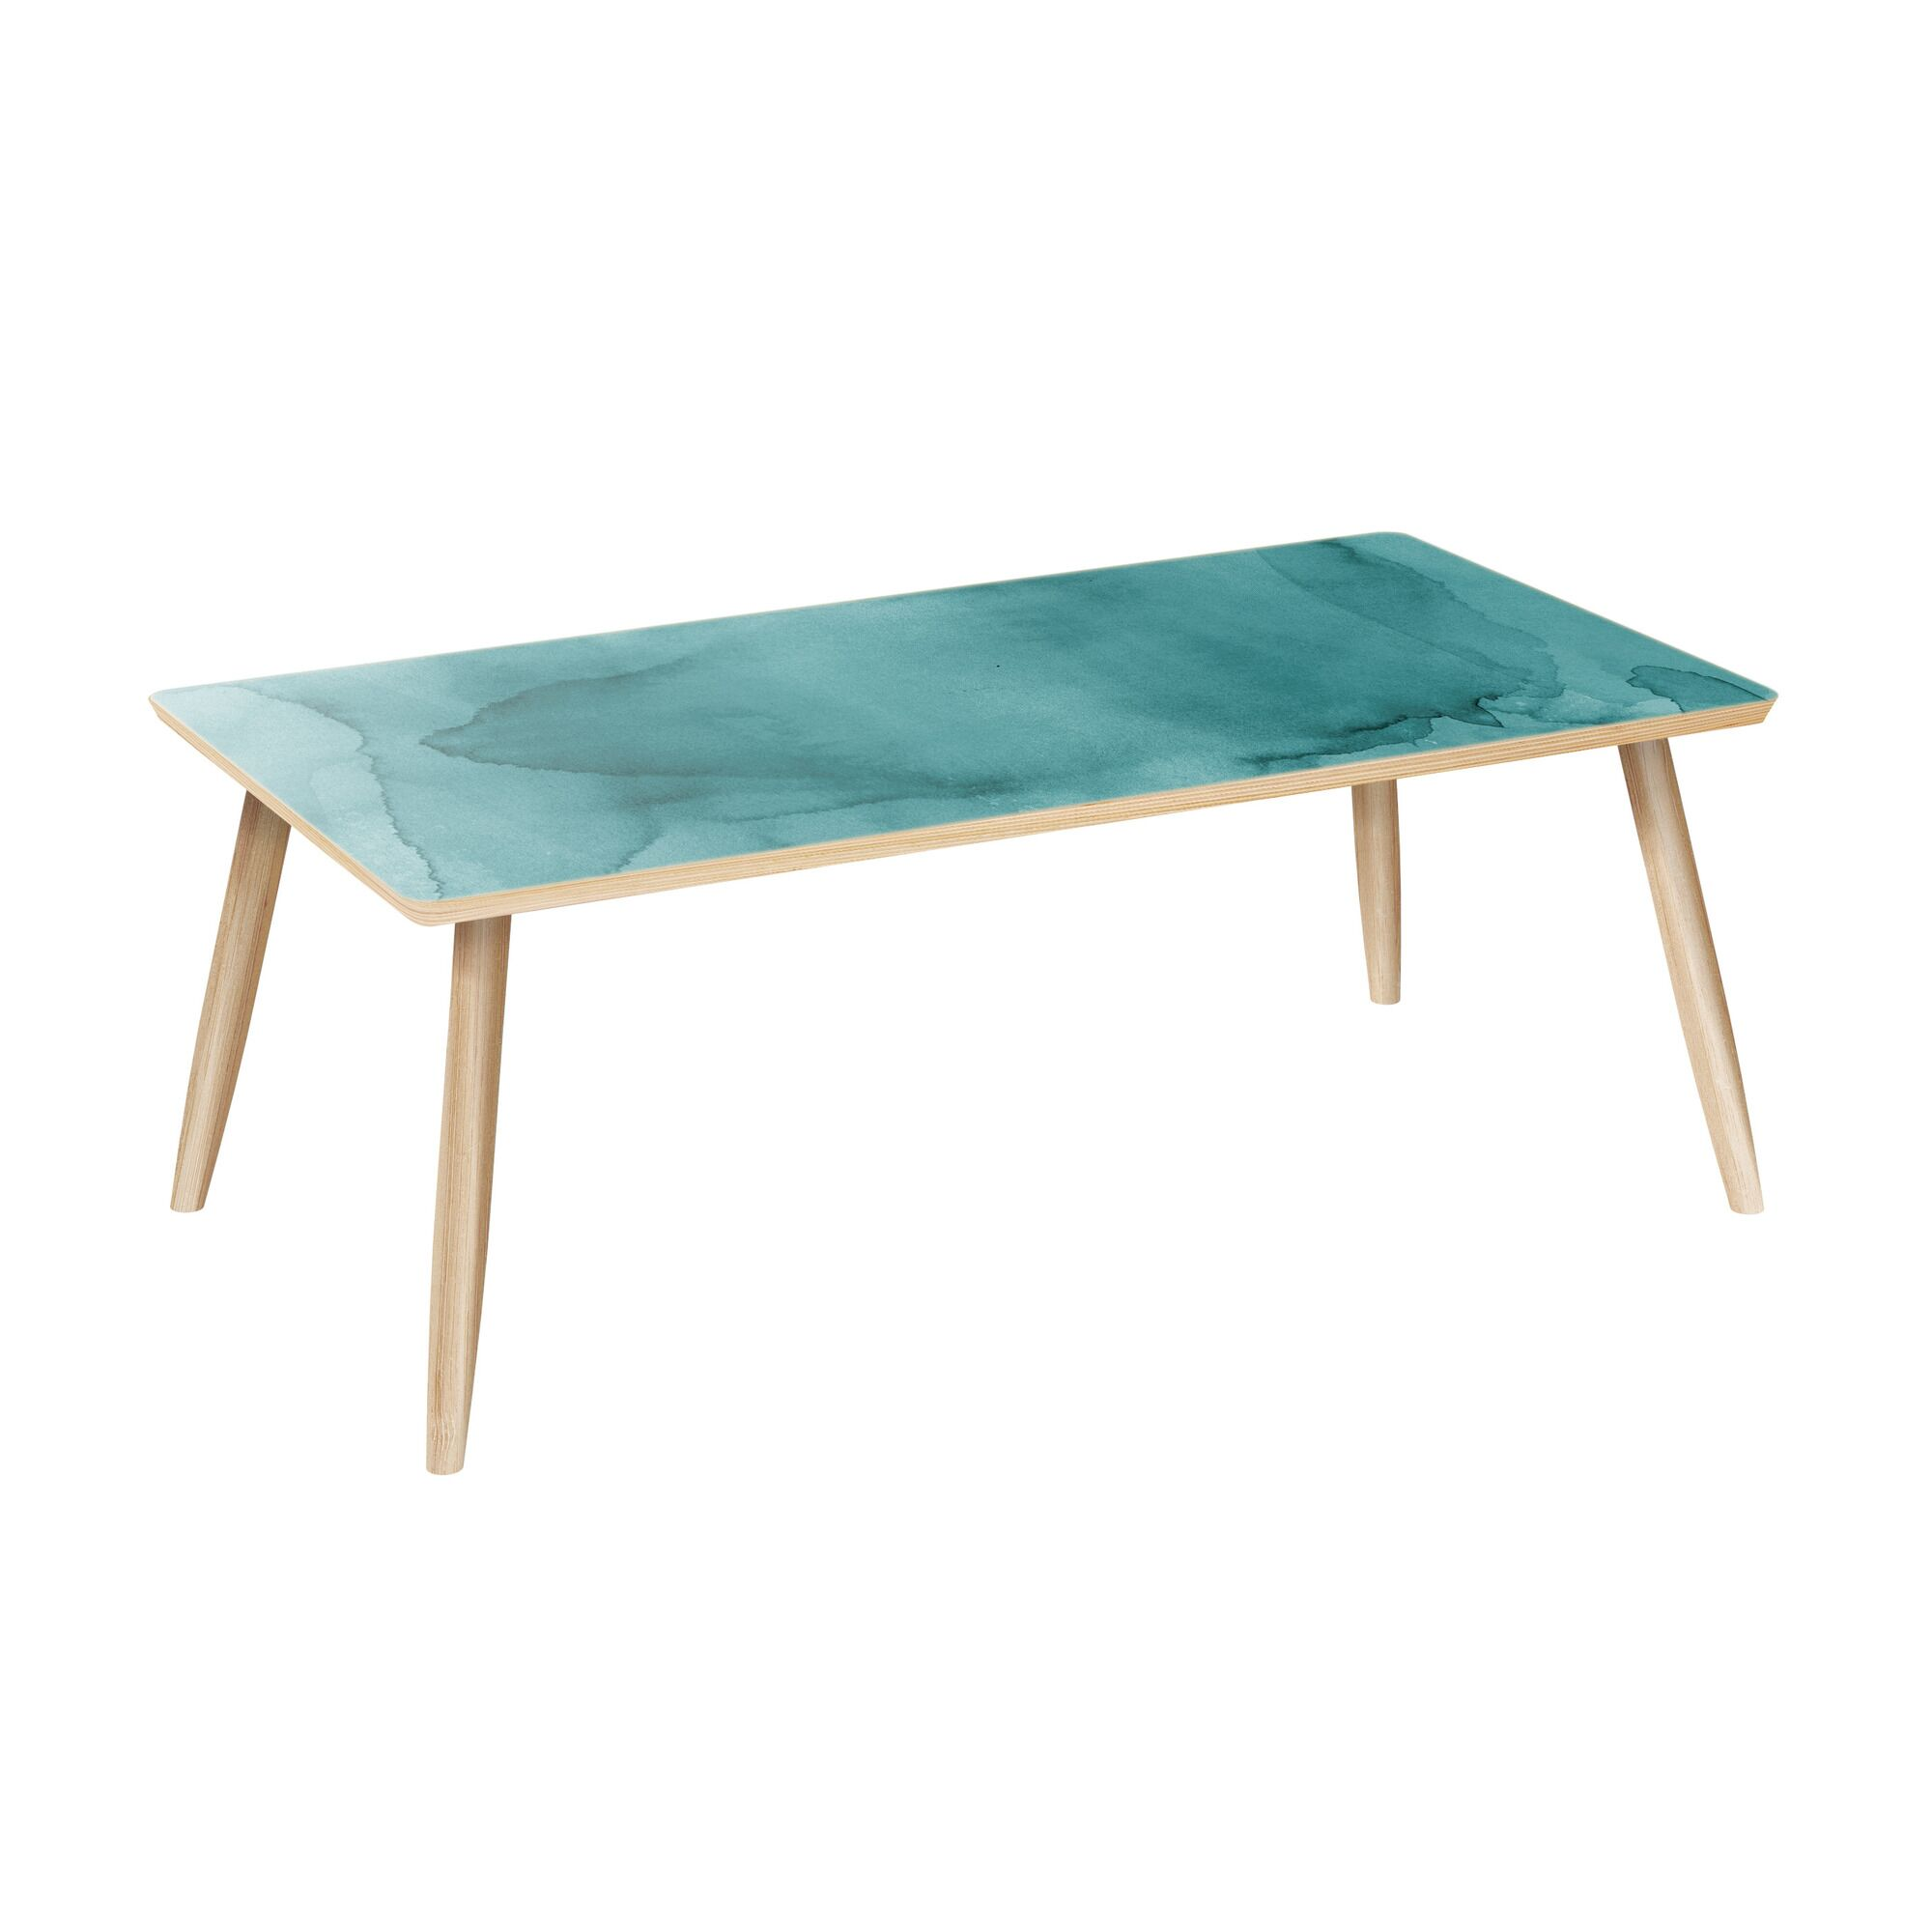 Loiret Coffee Table Table Base Color: Natural, Table Top Color: Pink